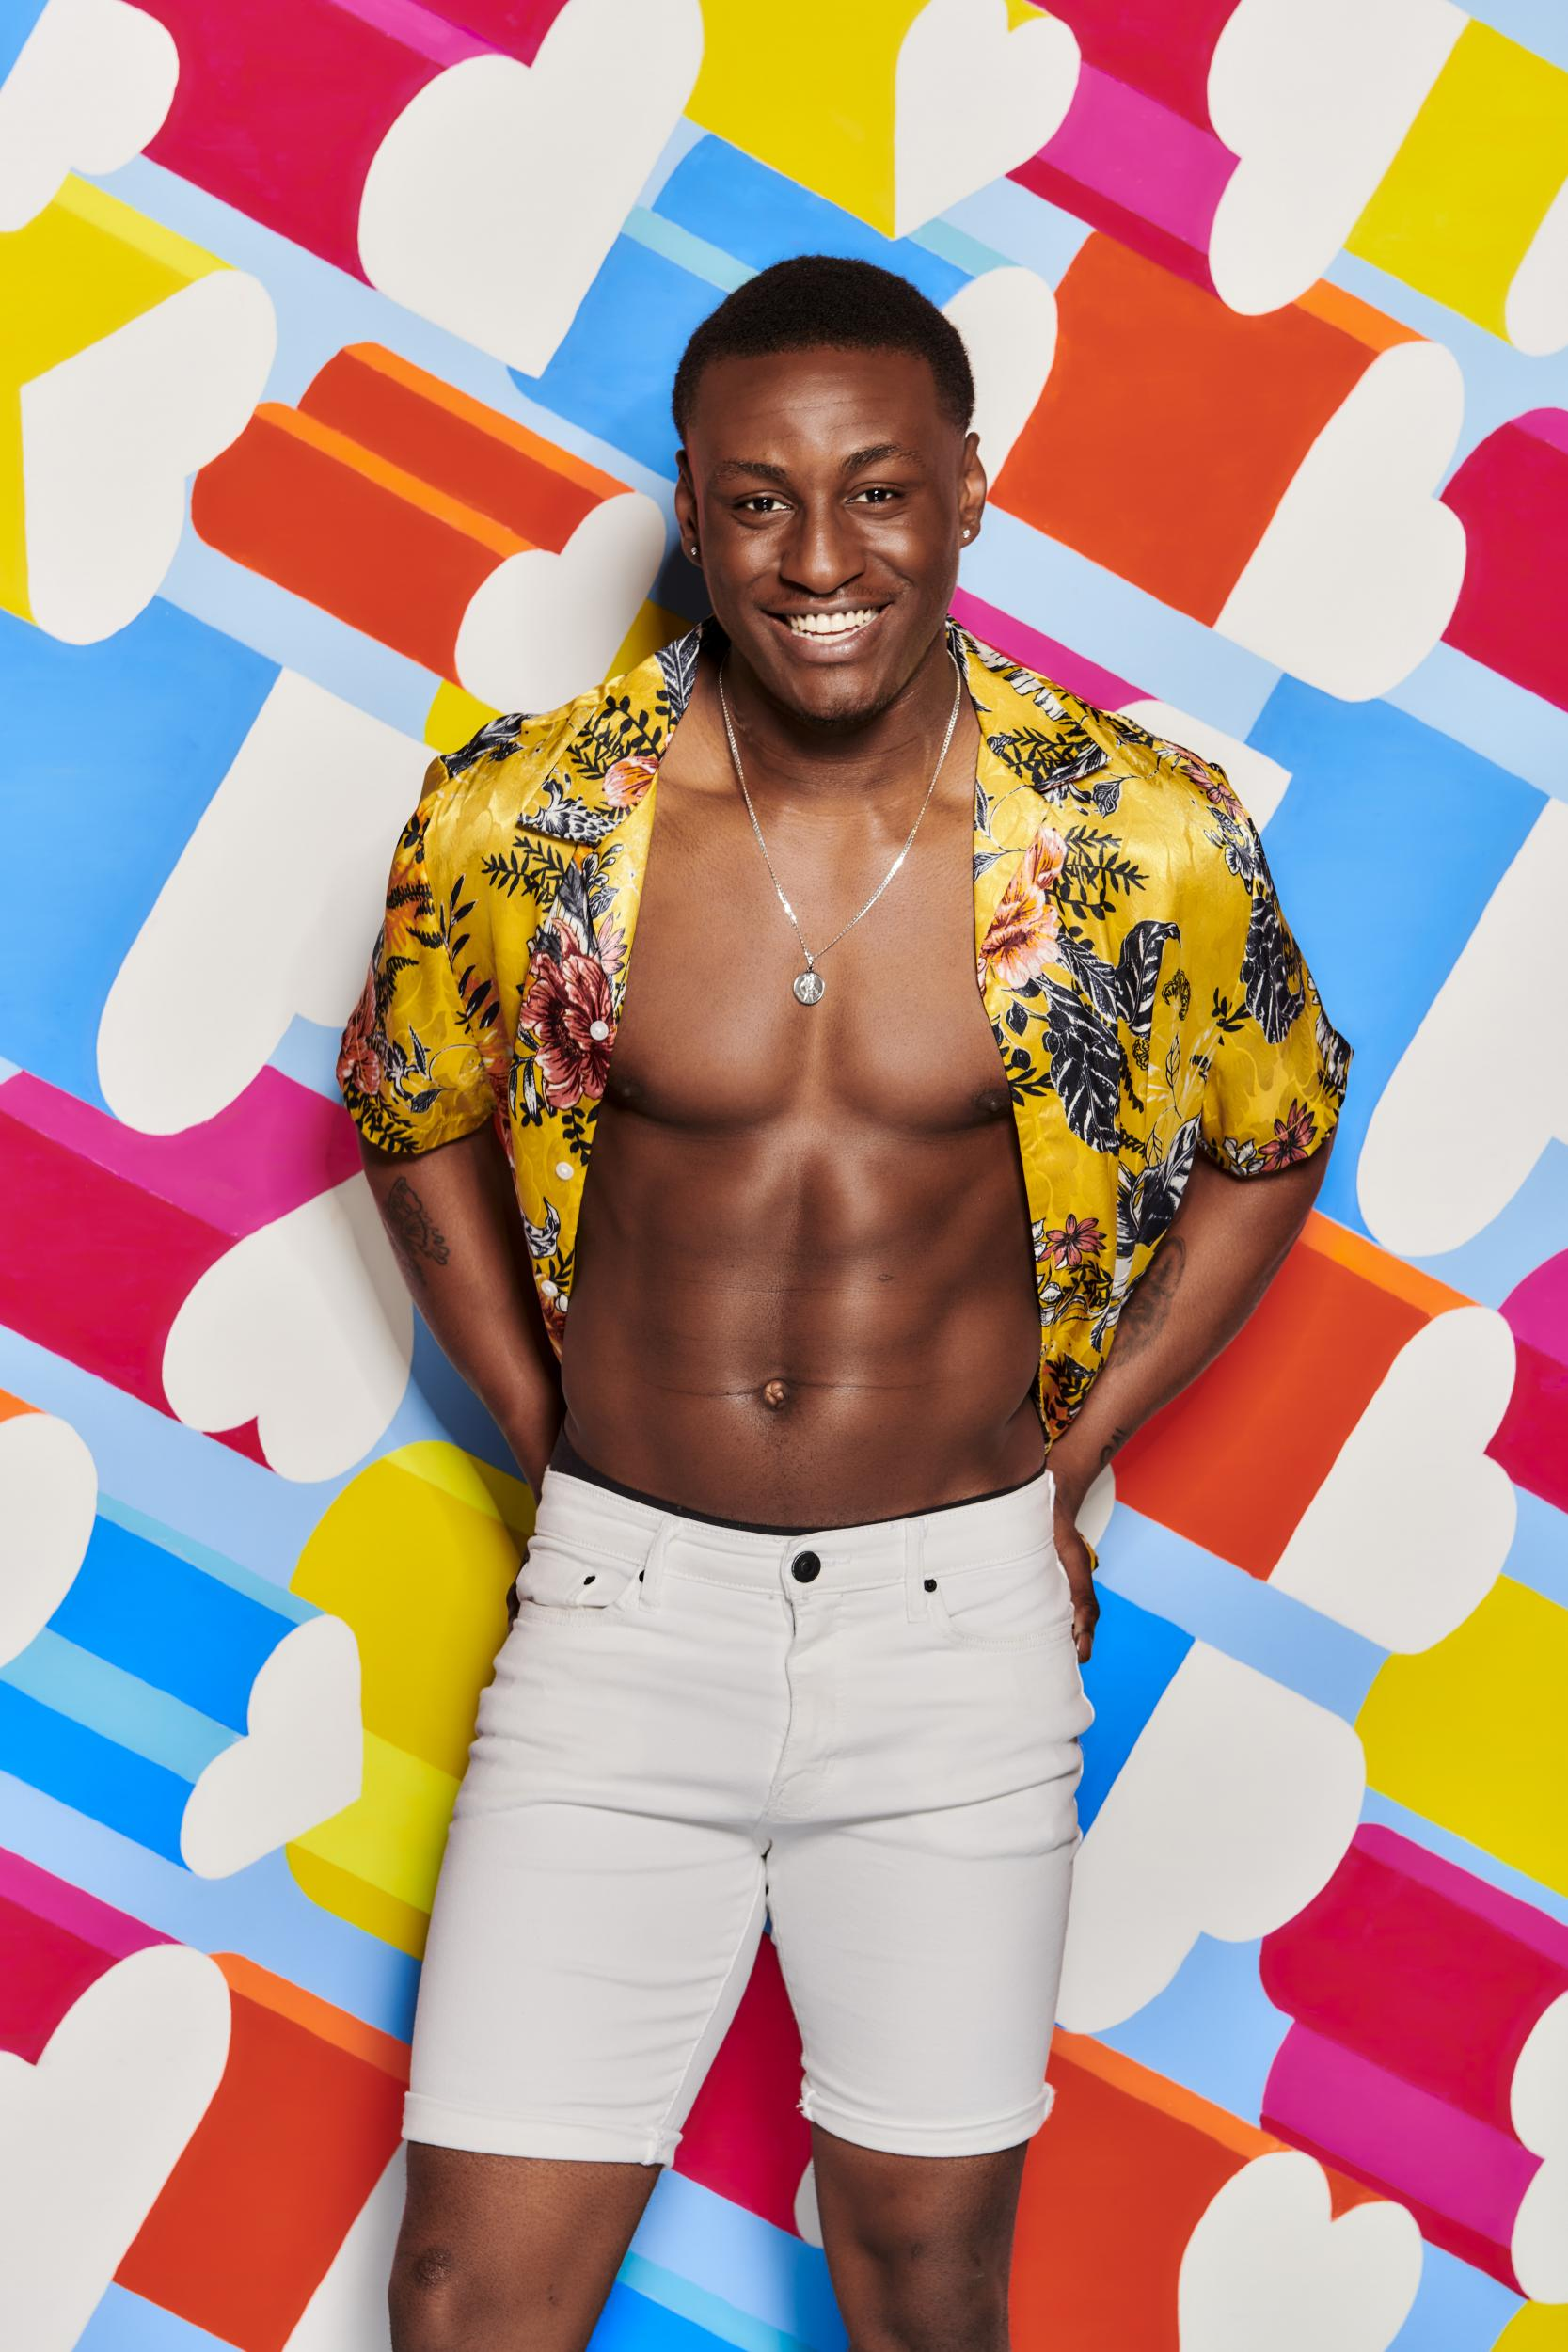 Love Island 2019: What time does it start on TV and how can I watch